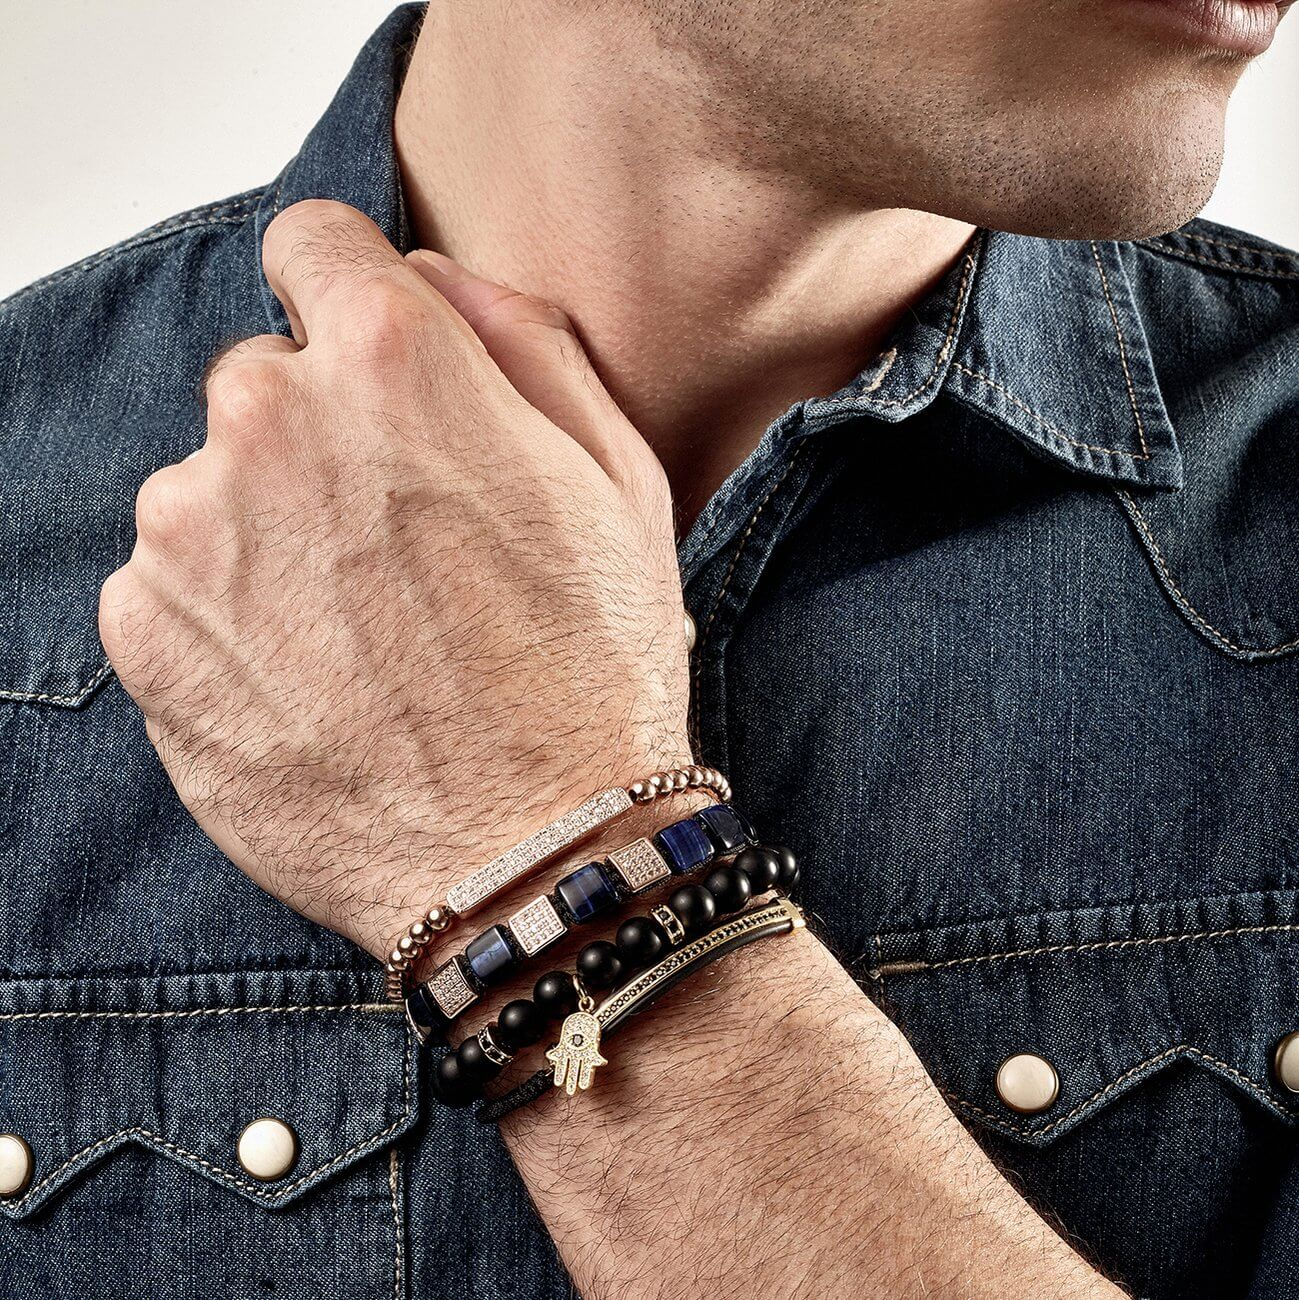 5 REASONS MEN SHOULD WEAR JEWELRY